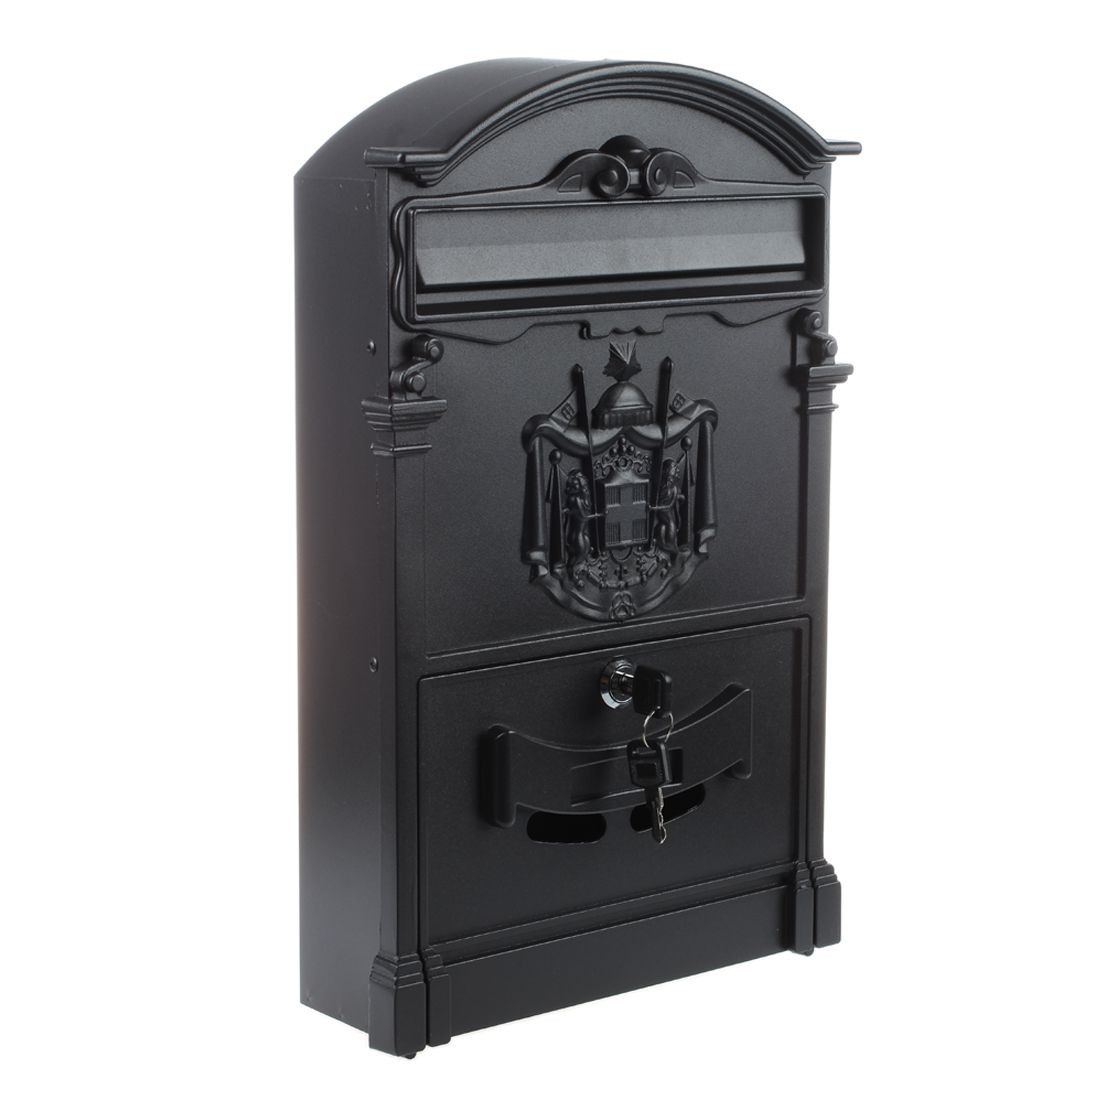 Heavy Duty Black Aluminium Lockable Secure Mail Newspaper Letter Post Box Letterbox New